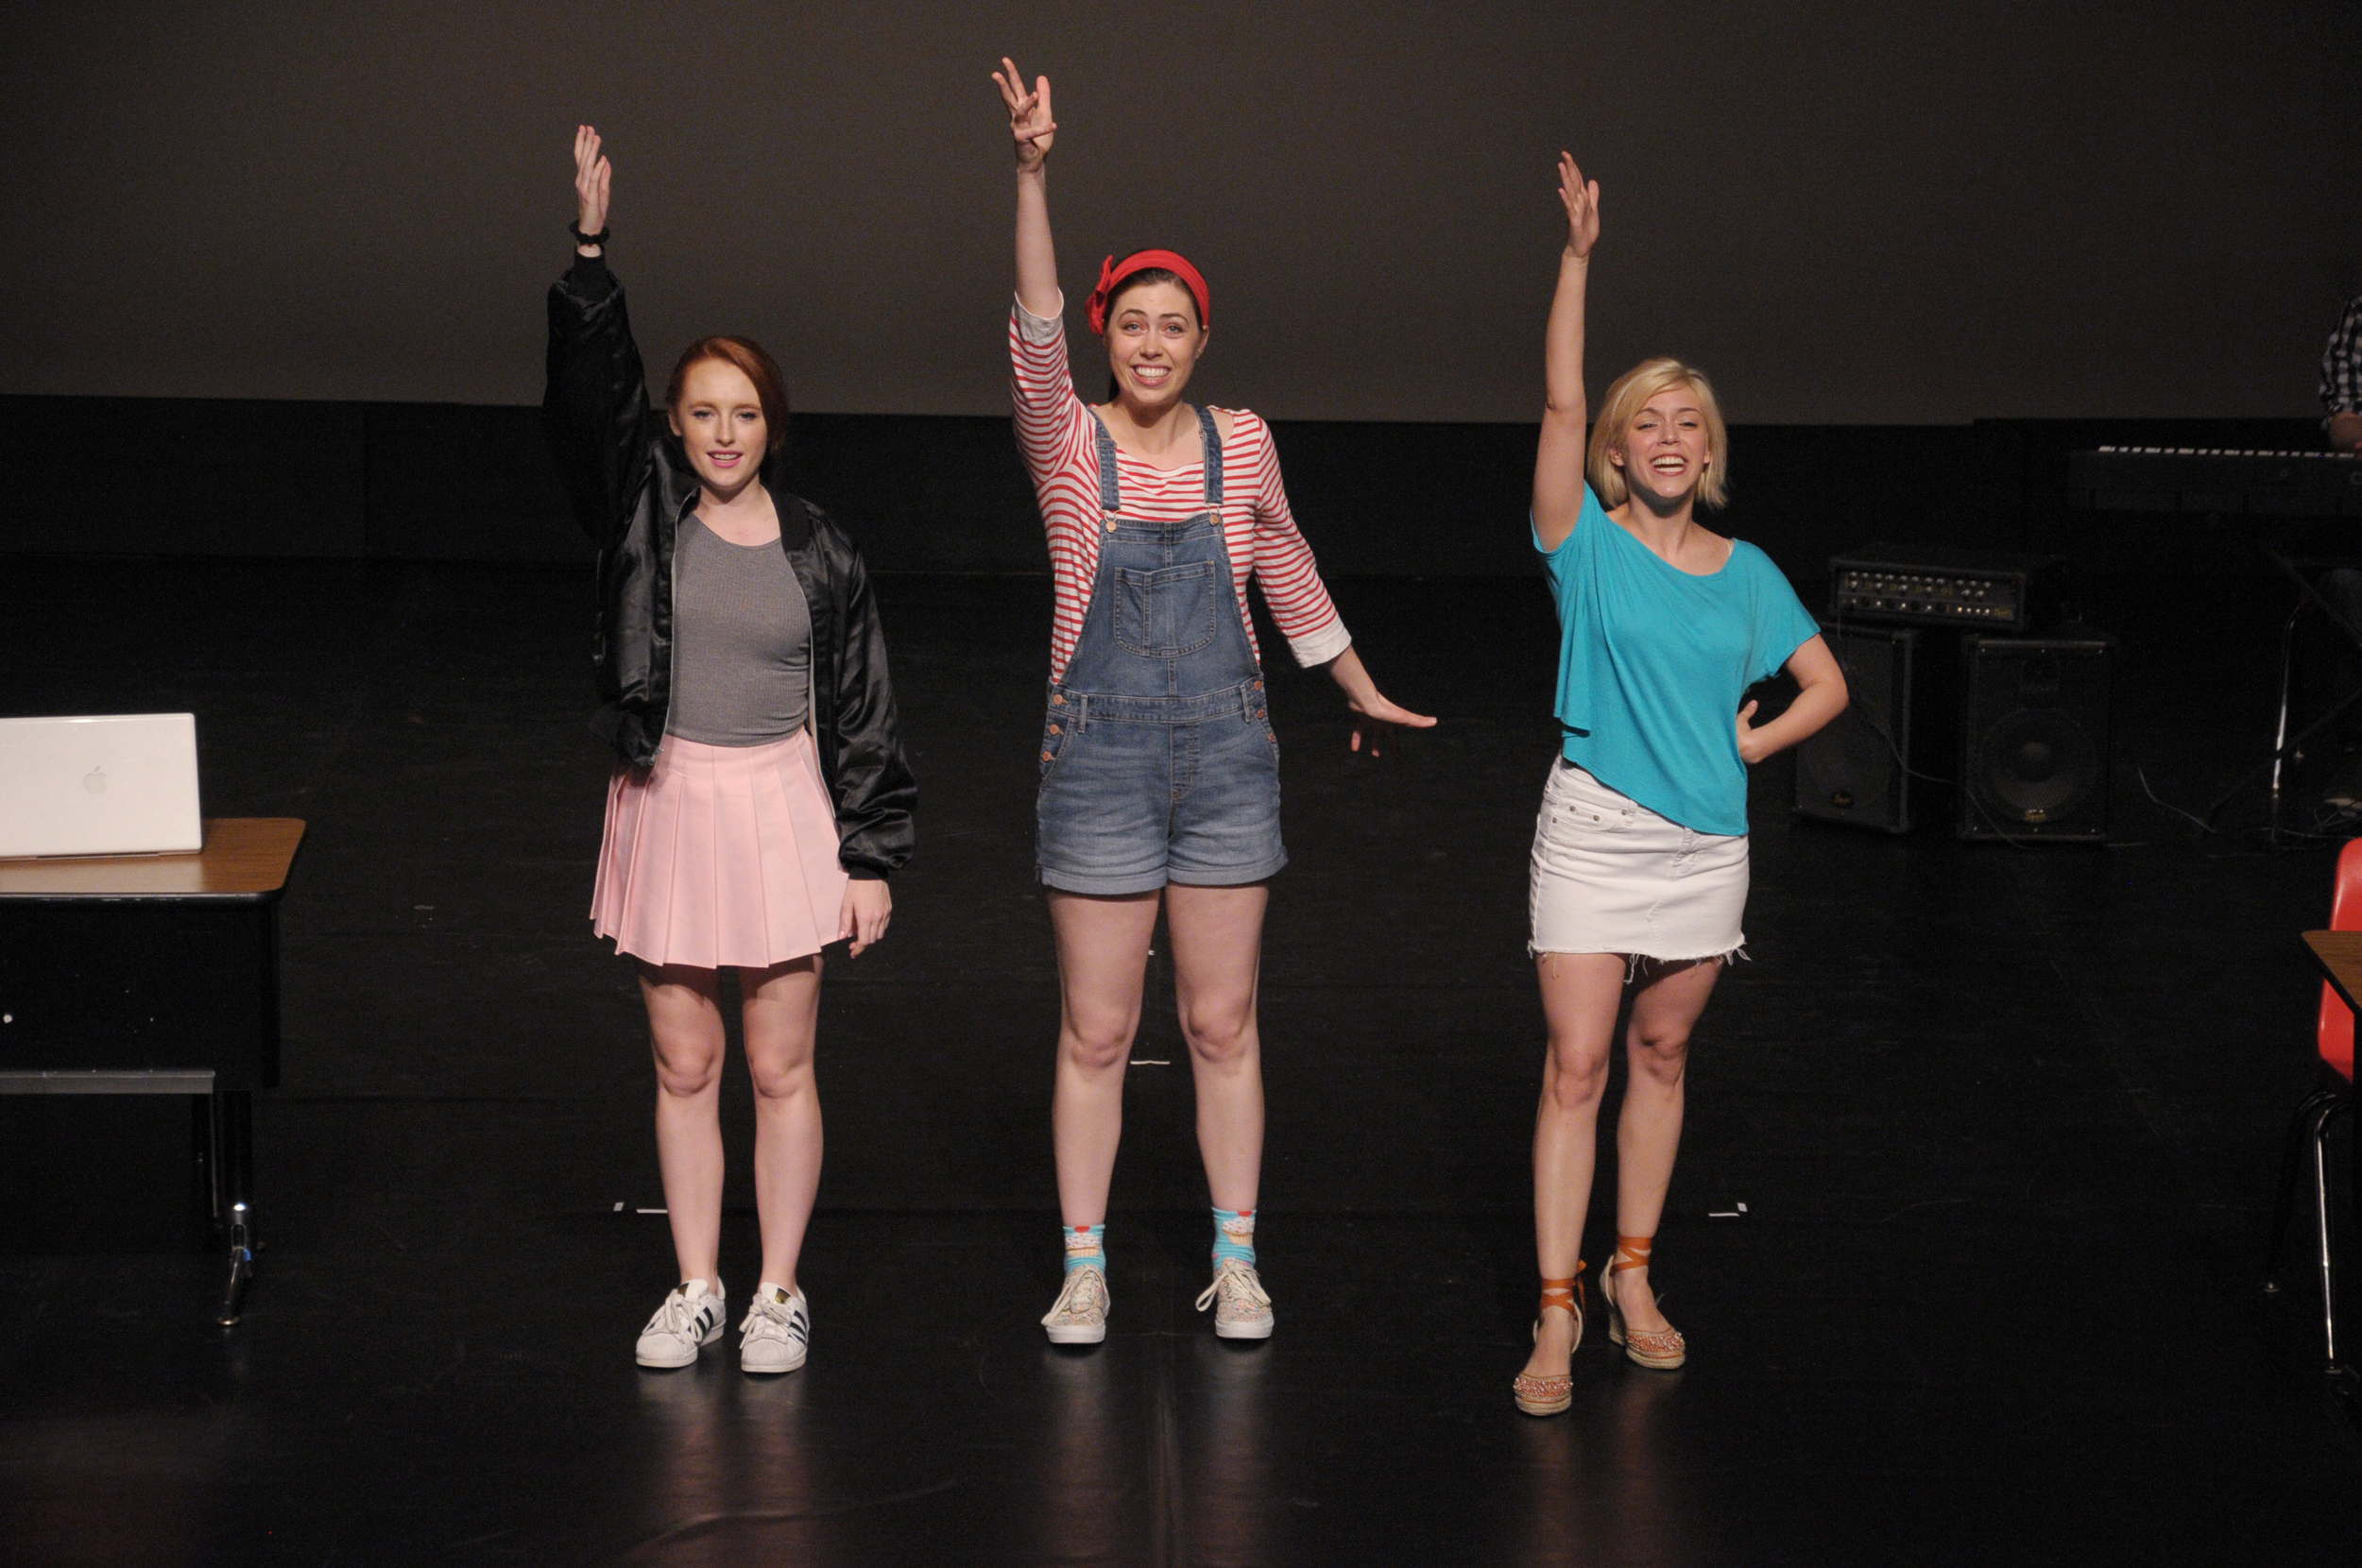 Chelsea Townsend, Tess Higgins, and Brittany Martz in Dark Times at Grimesville High, 2016 Capital Fringe Festival